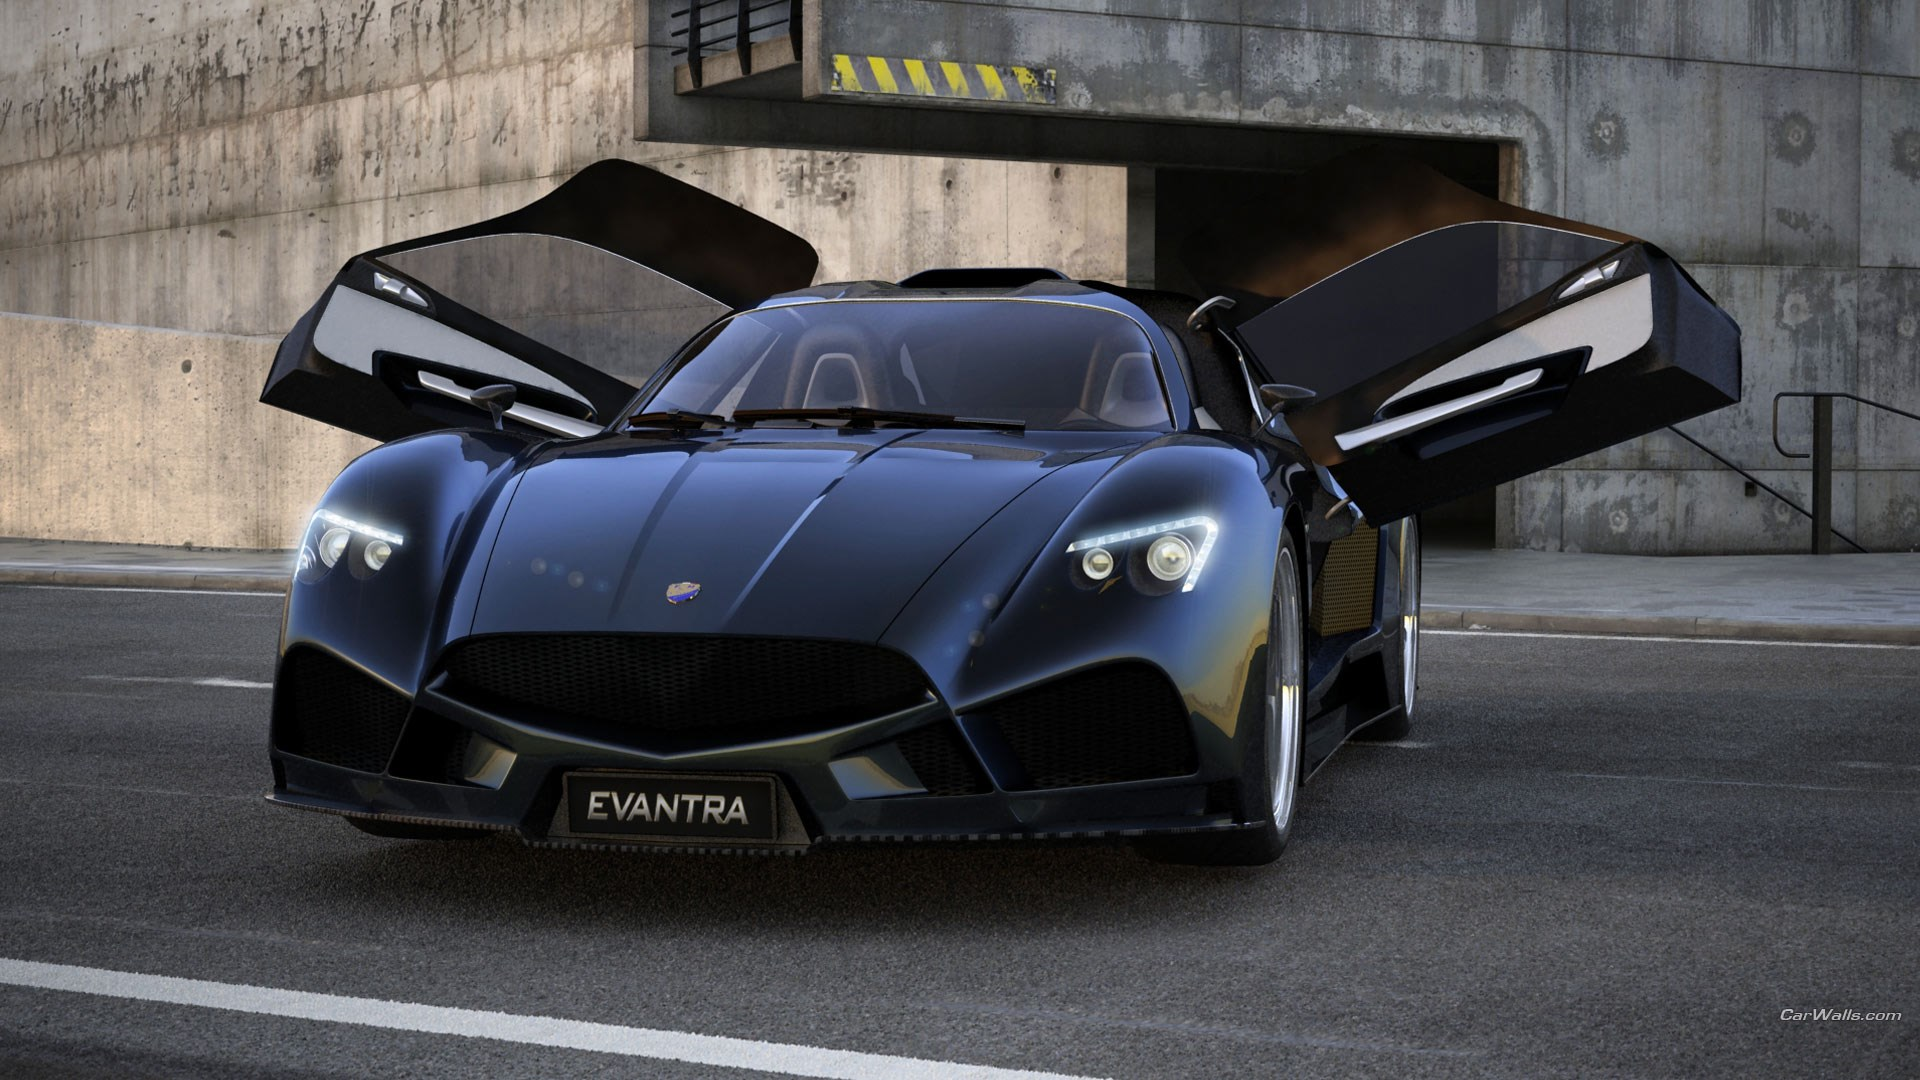 1920x1080-free-high-resolution-fampm-auto-evantra-wallpaper-wpc580738